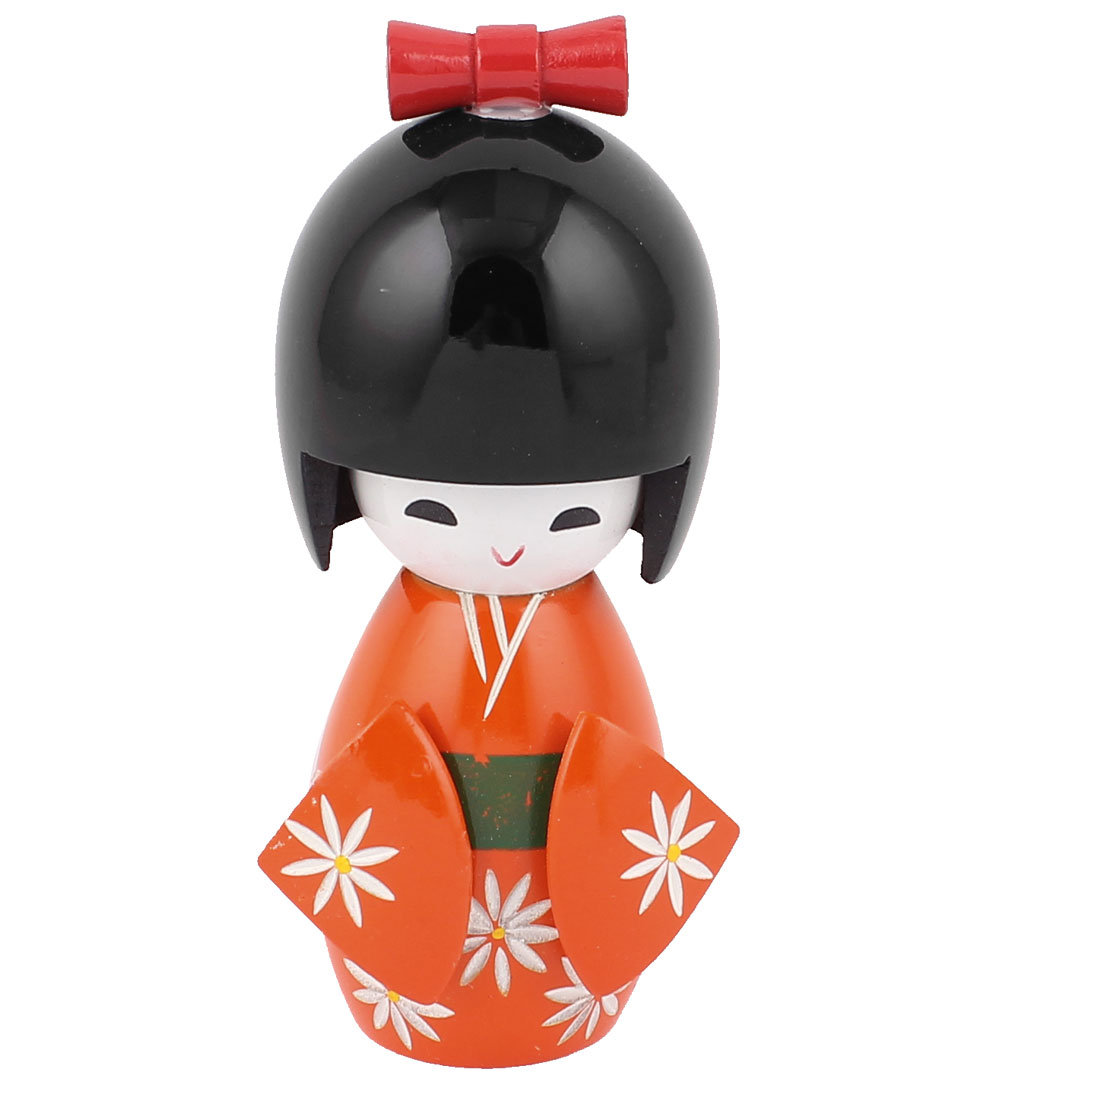 Wooden Traditional Japanese Kimono Kokeshi Doll Desk Decoration Orange